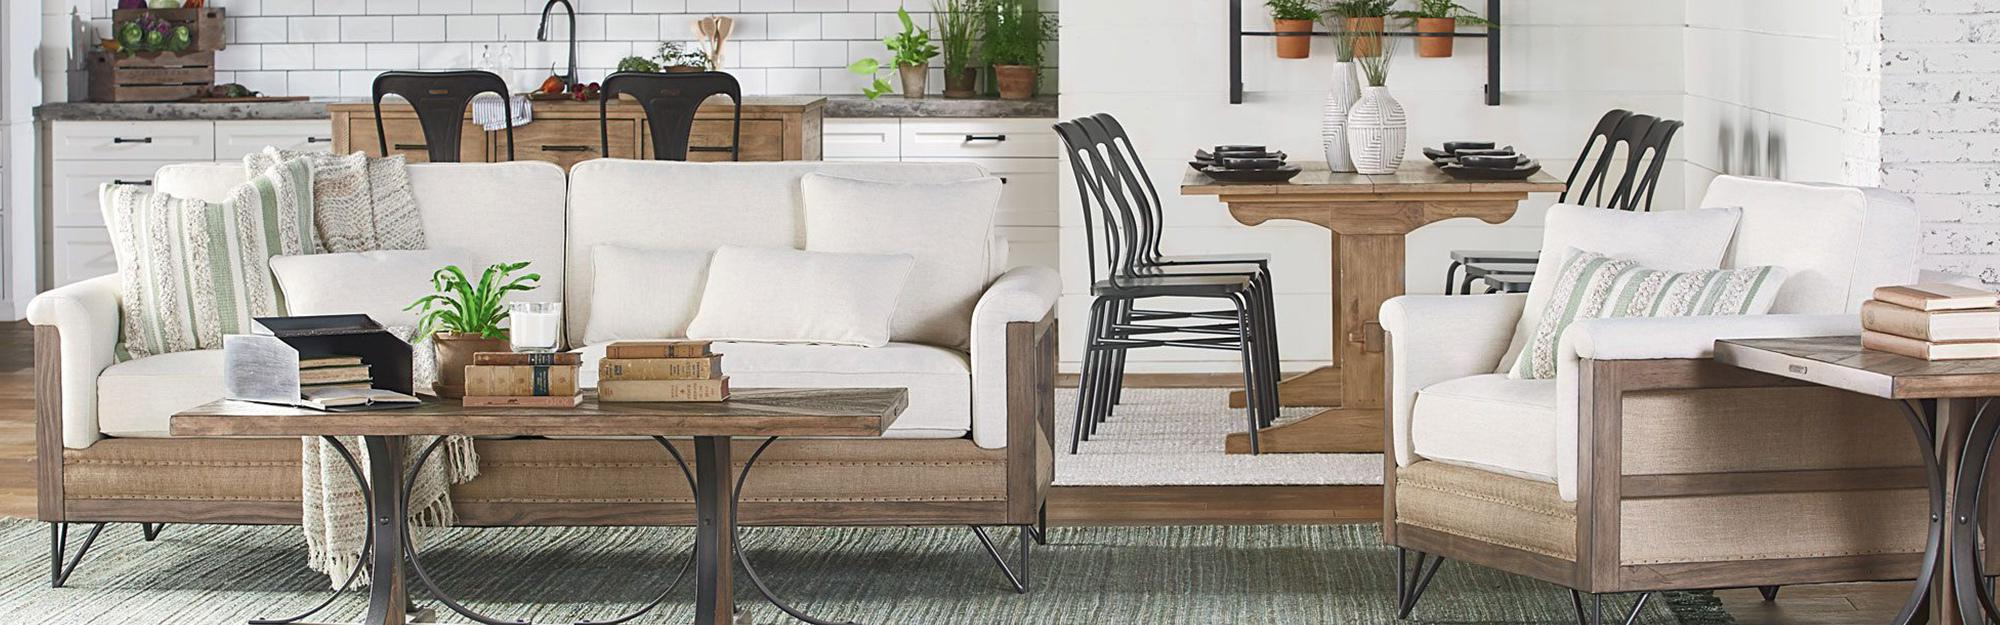 Famous Magnolia Home Homestead 3 Piece Sectionals By Joanna Gaines Regarding Magnolia Home Living Room (View 1 of 20)